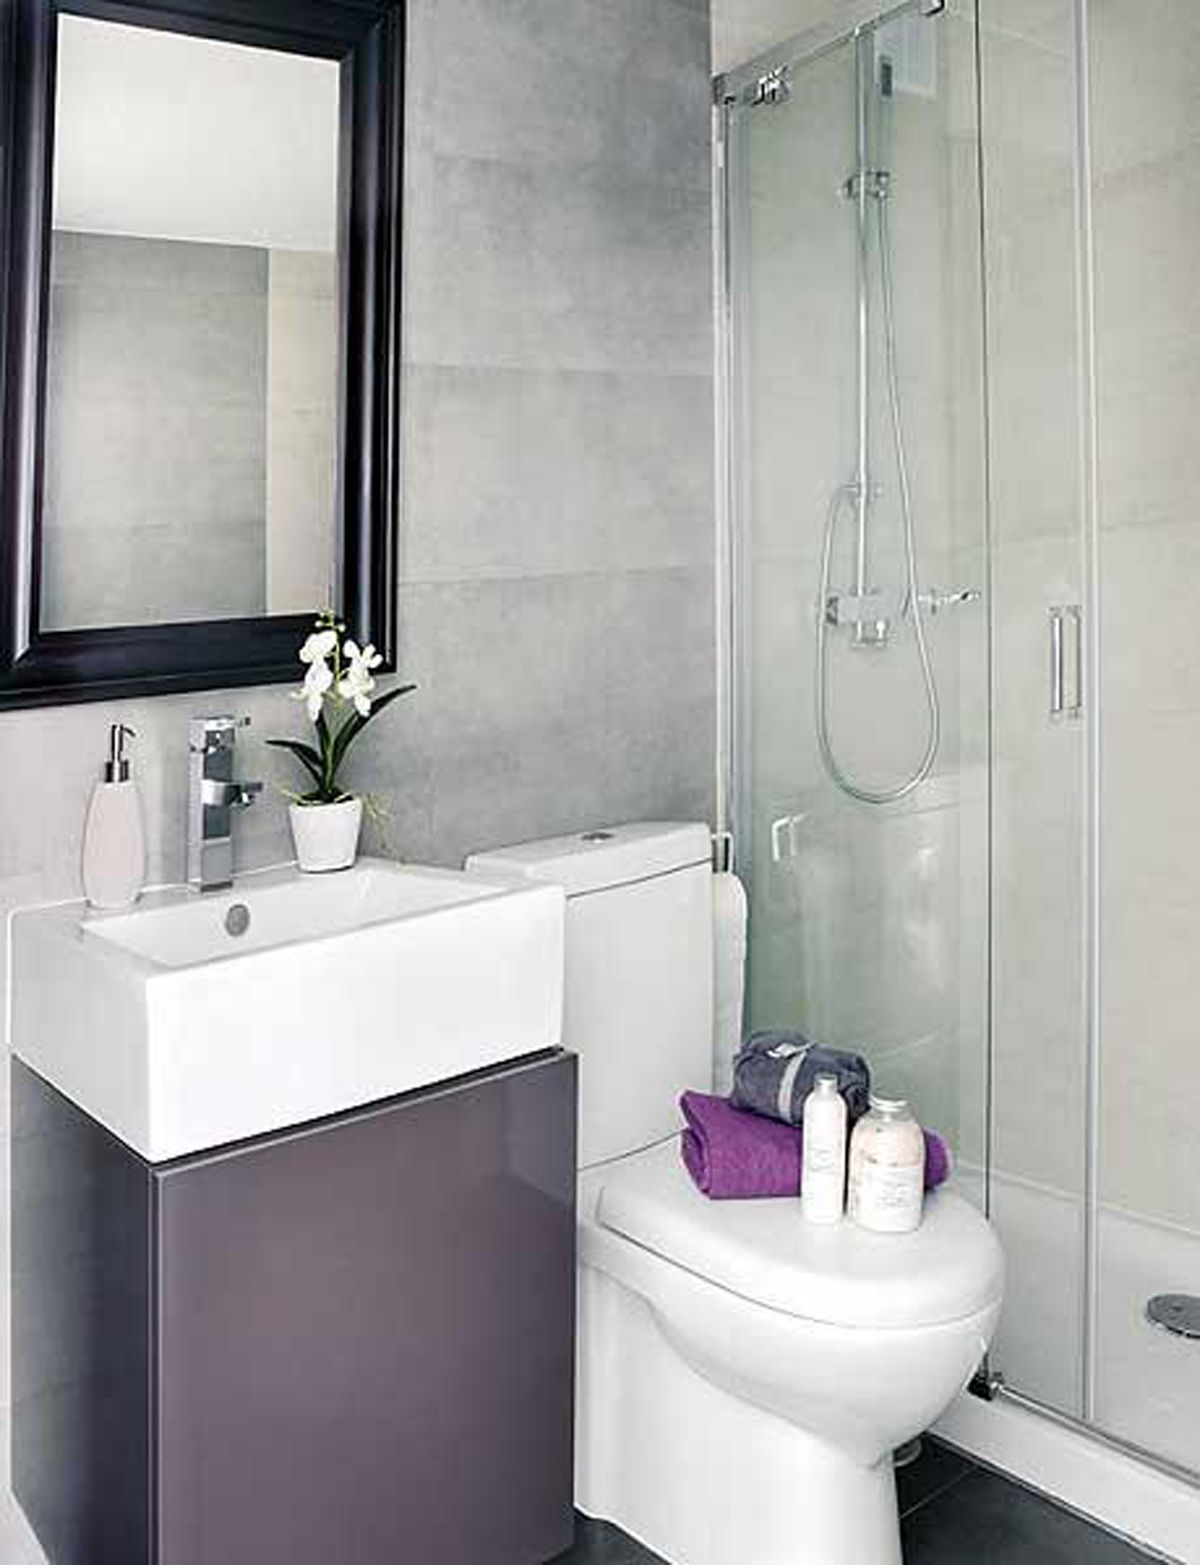 Intrinsic Interior Design Applied In Small Apartment Architecture - Bathroom designs for small spaces for small bathroom ideas